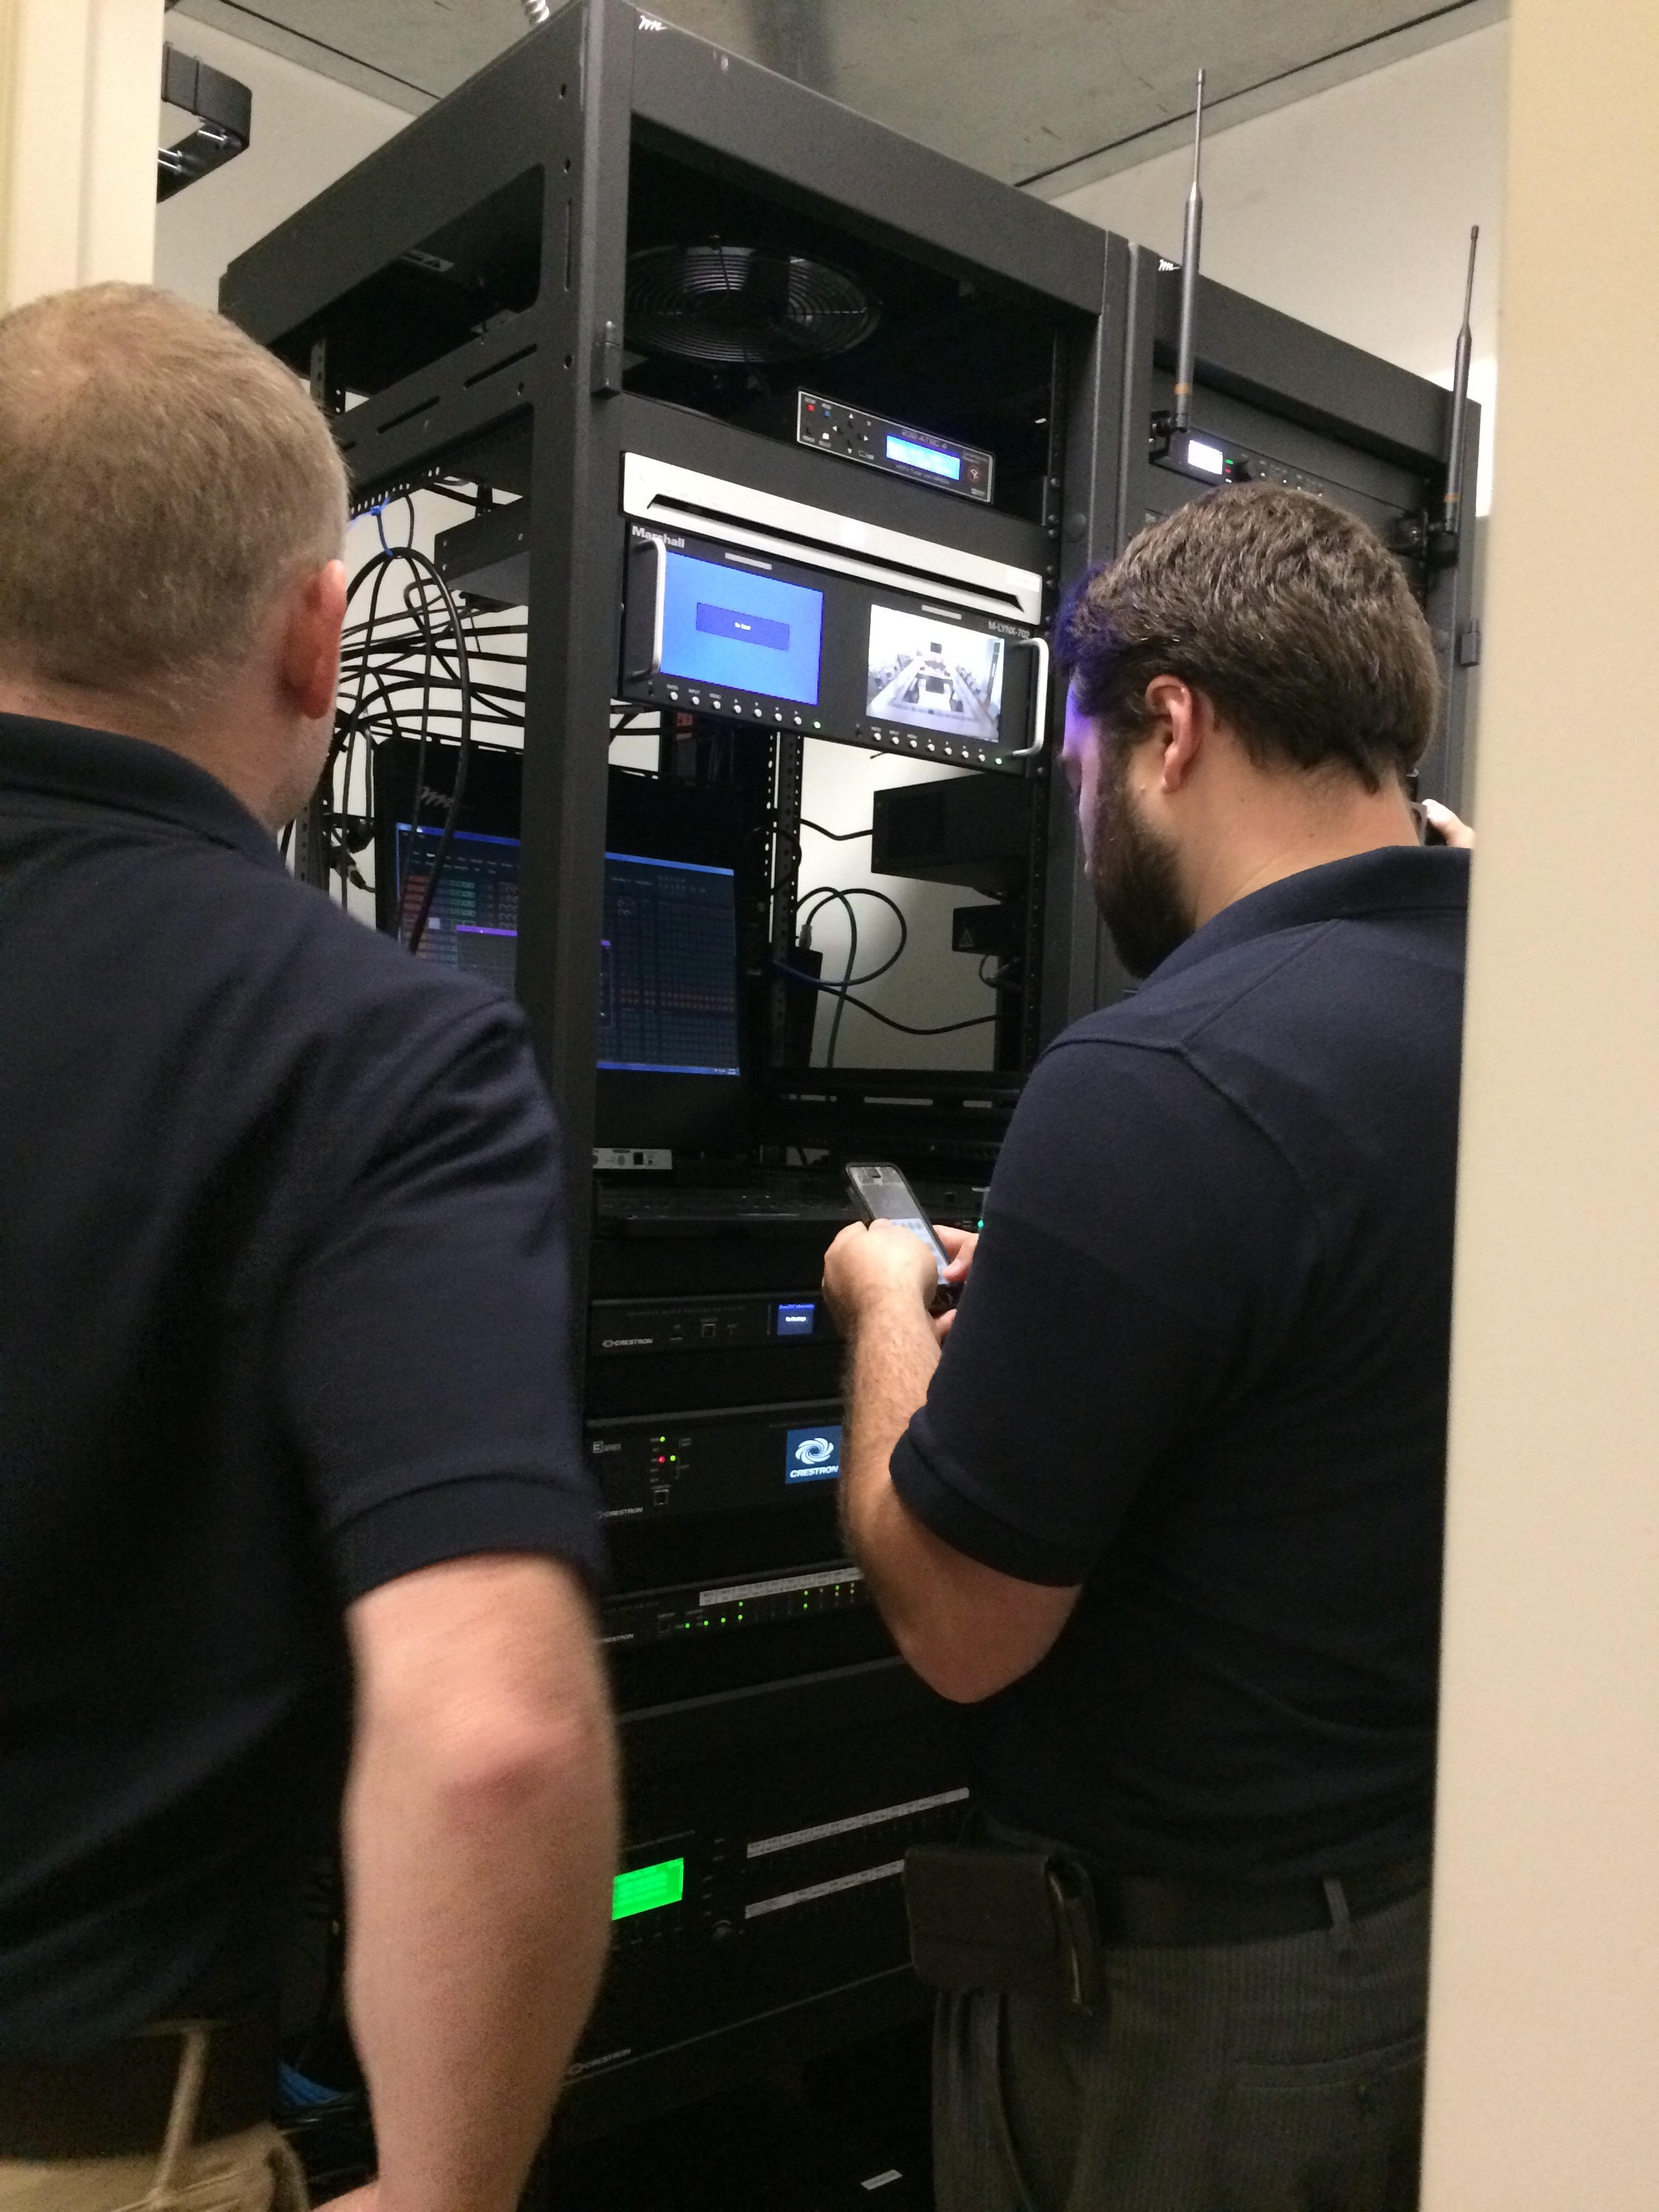 Observing integrators in the field creating and troubleshooting their touch panel devices.